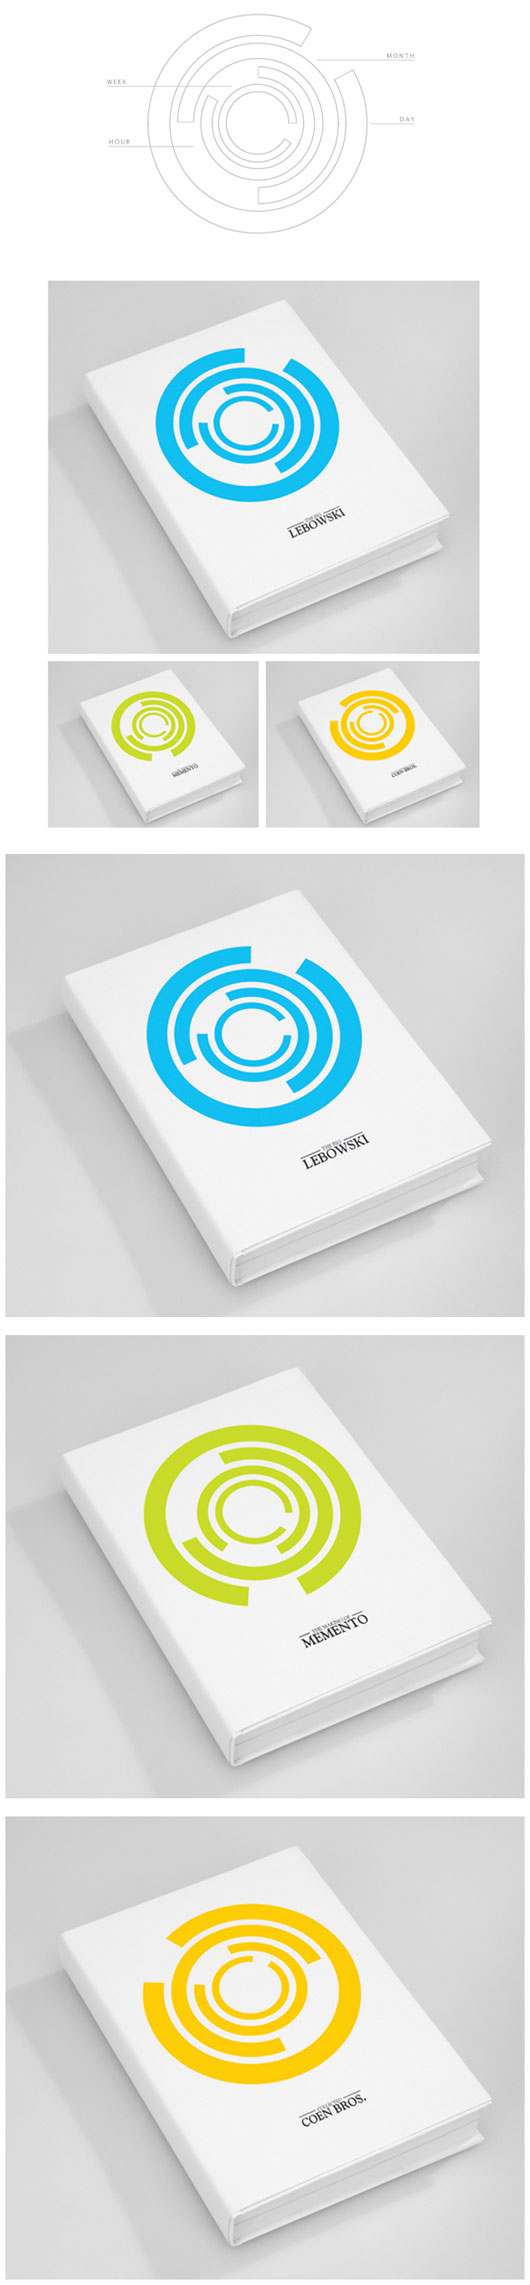 Minimal Book Cover Designs